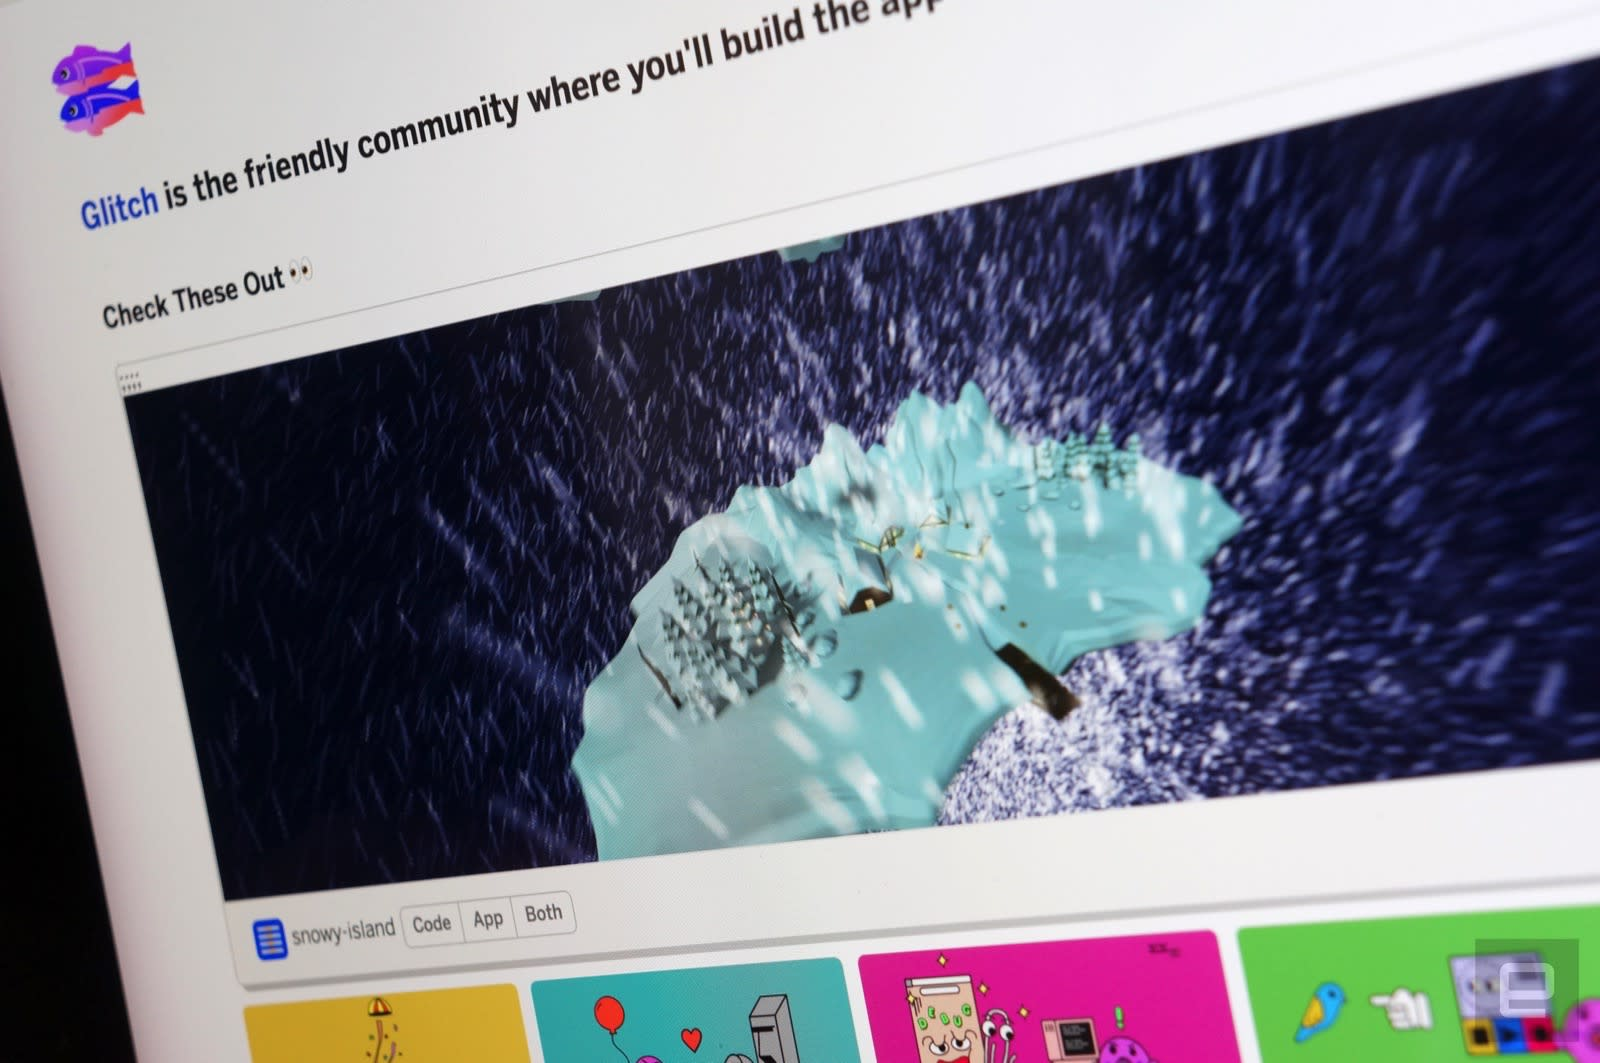 Glitch launches its 'YouTube for app creators' | Engadget